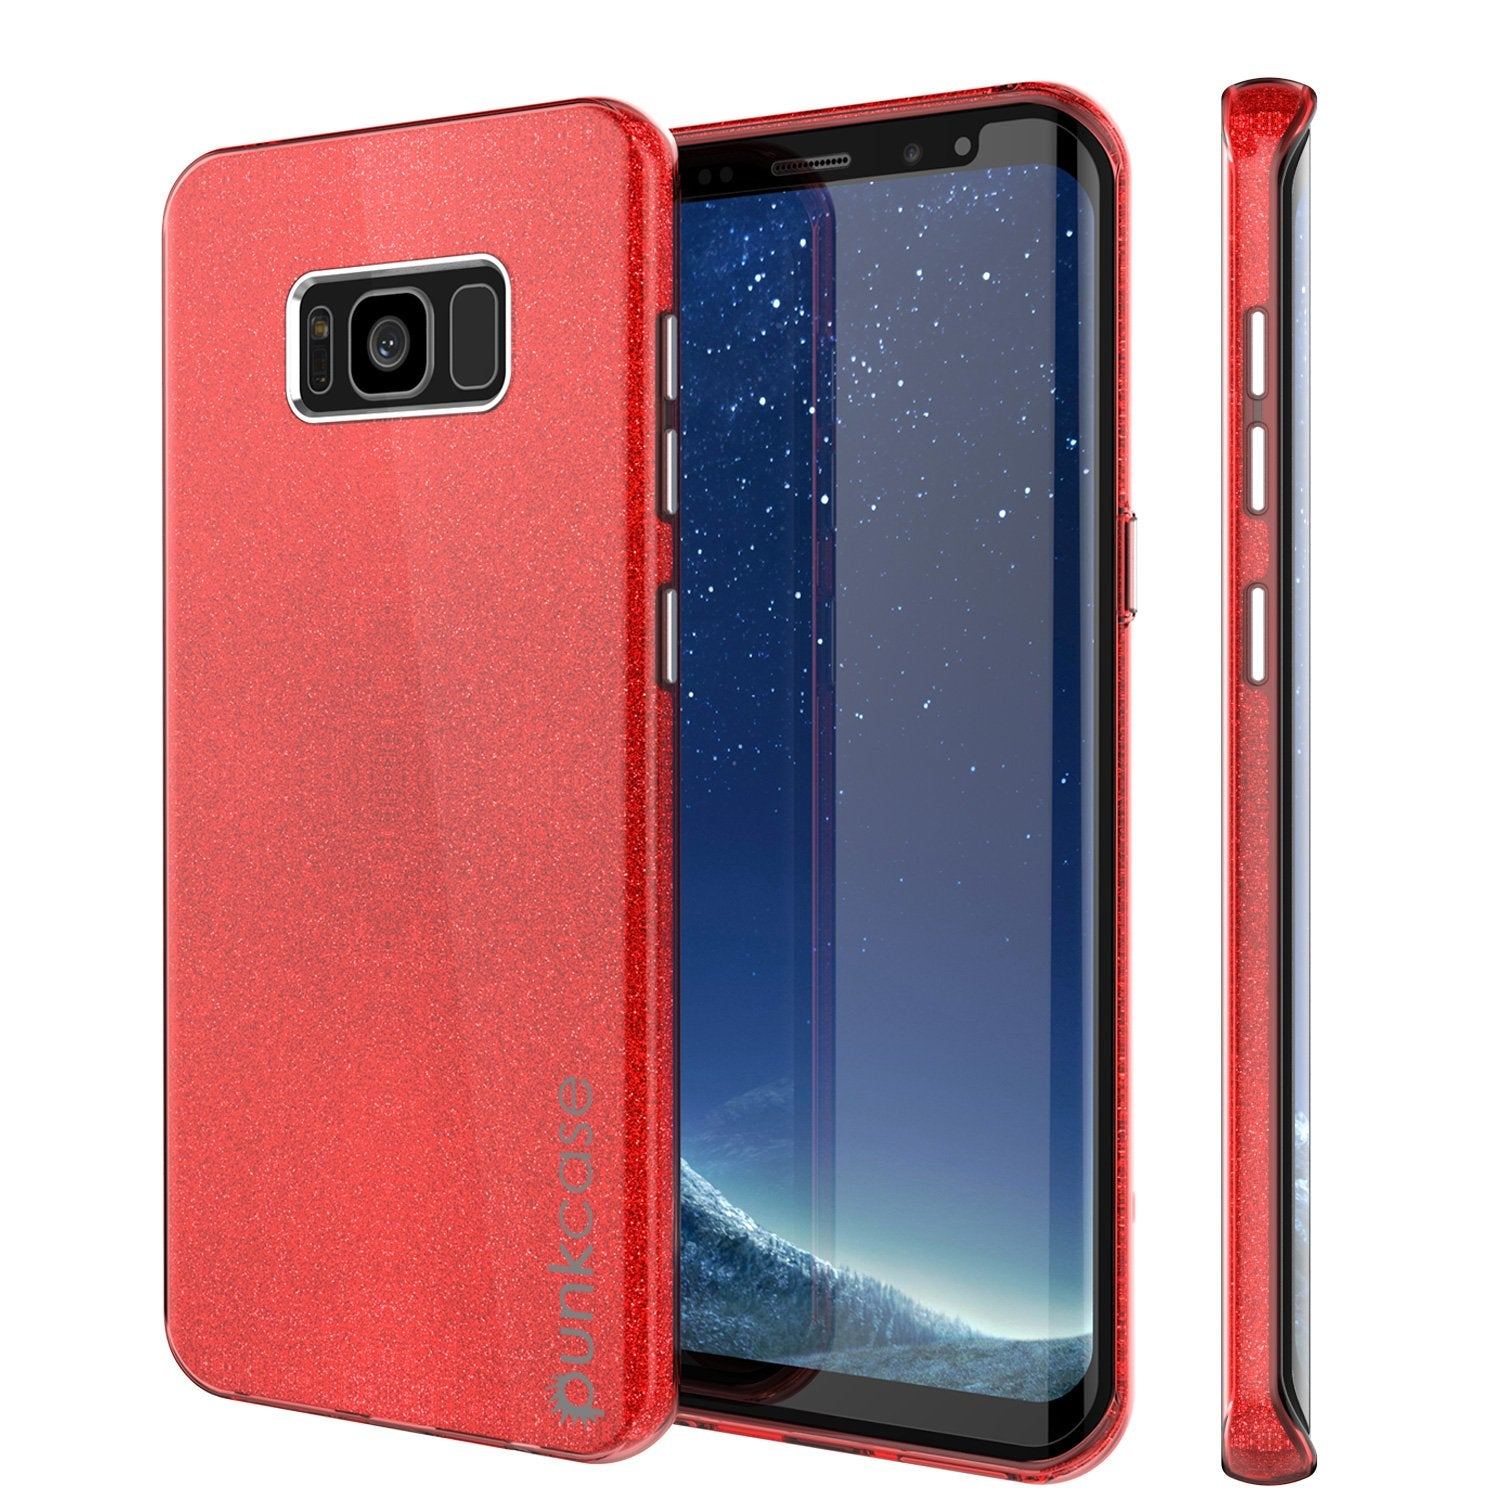 Galaxy S8 Case, Punkcase Galactic 2.0 Series Armor Red Cover